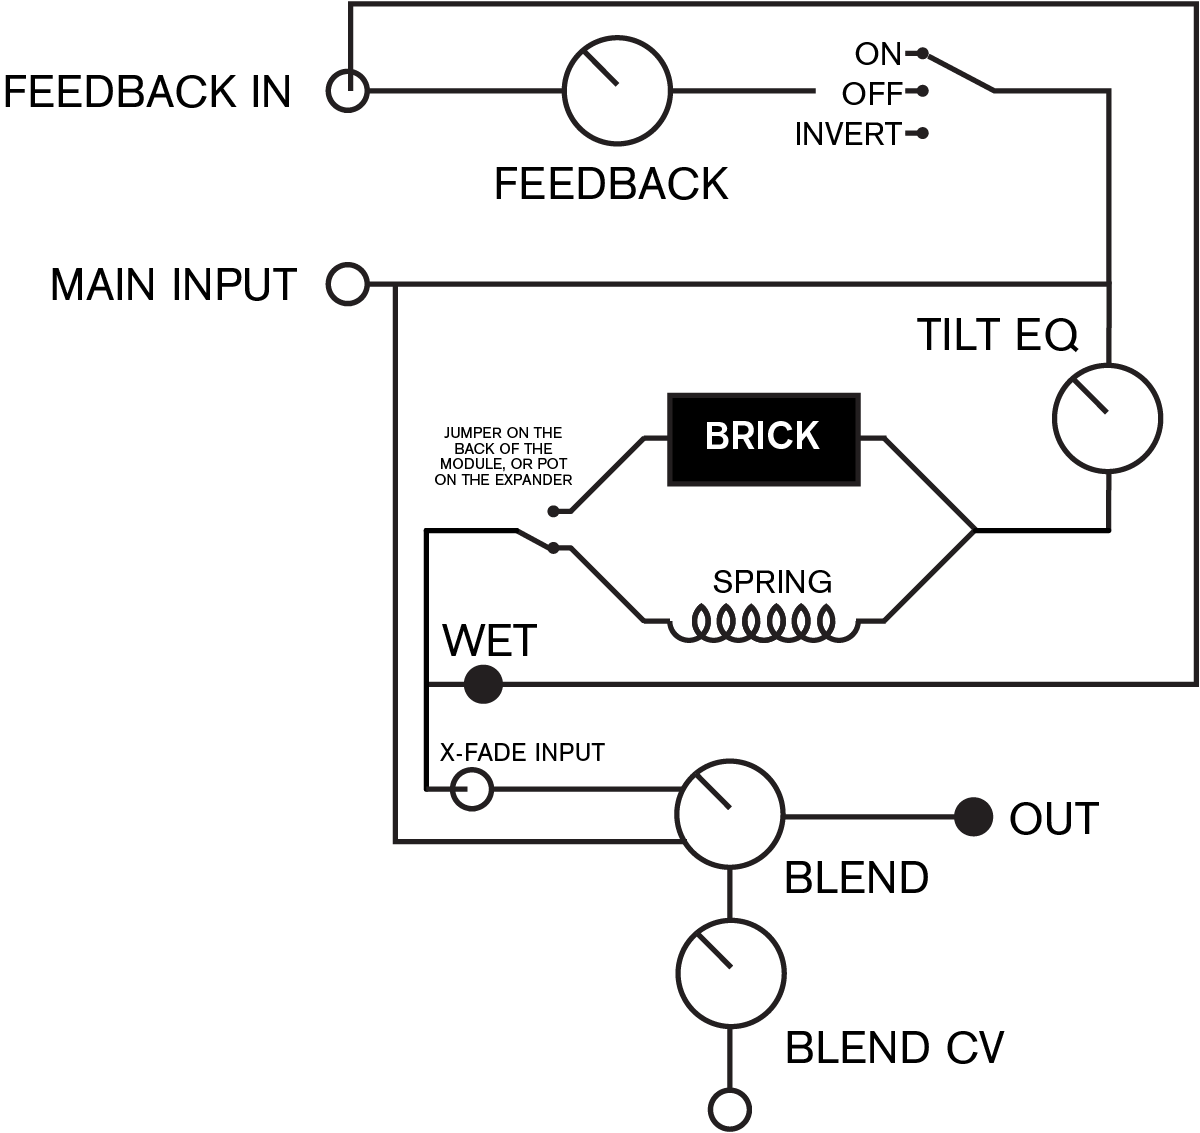 hight resolution of spring reverb mk2 diagram click to enlarge